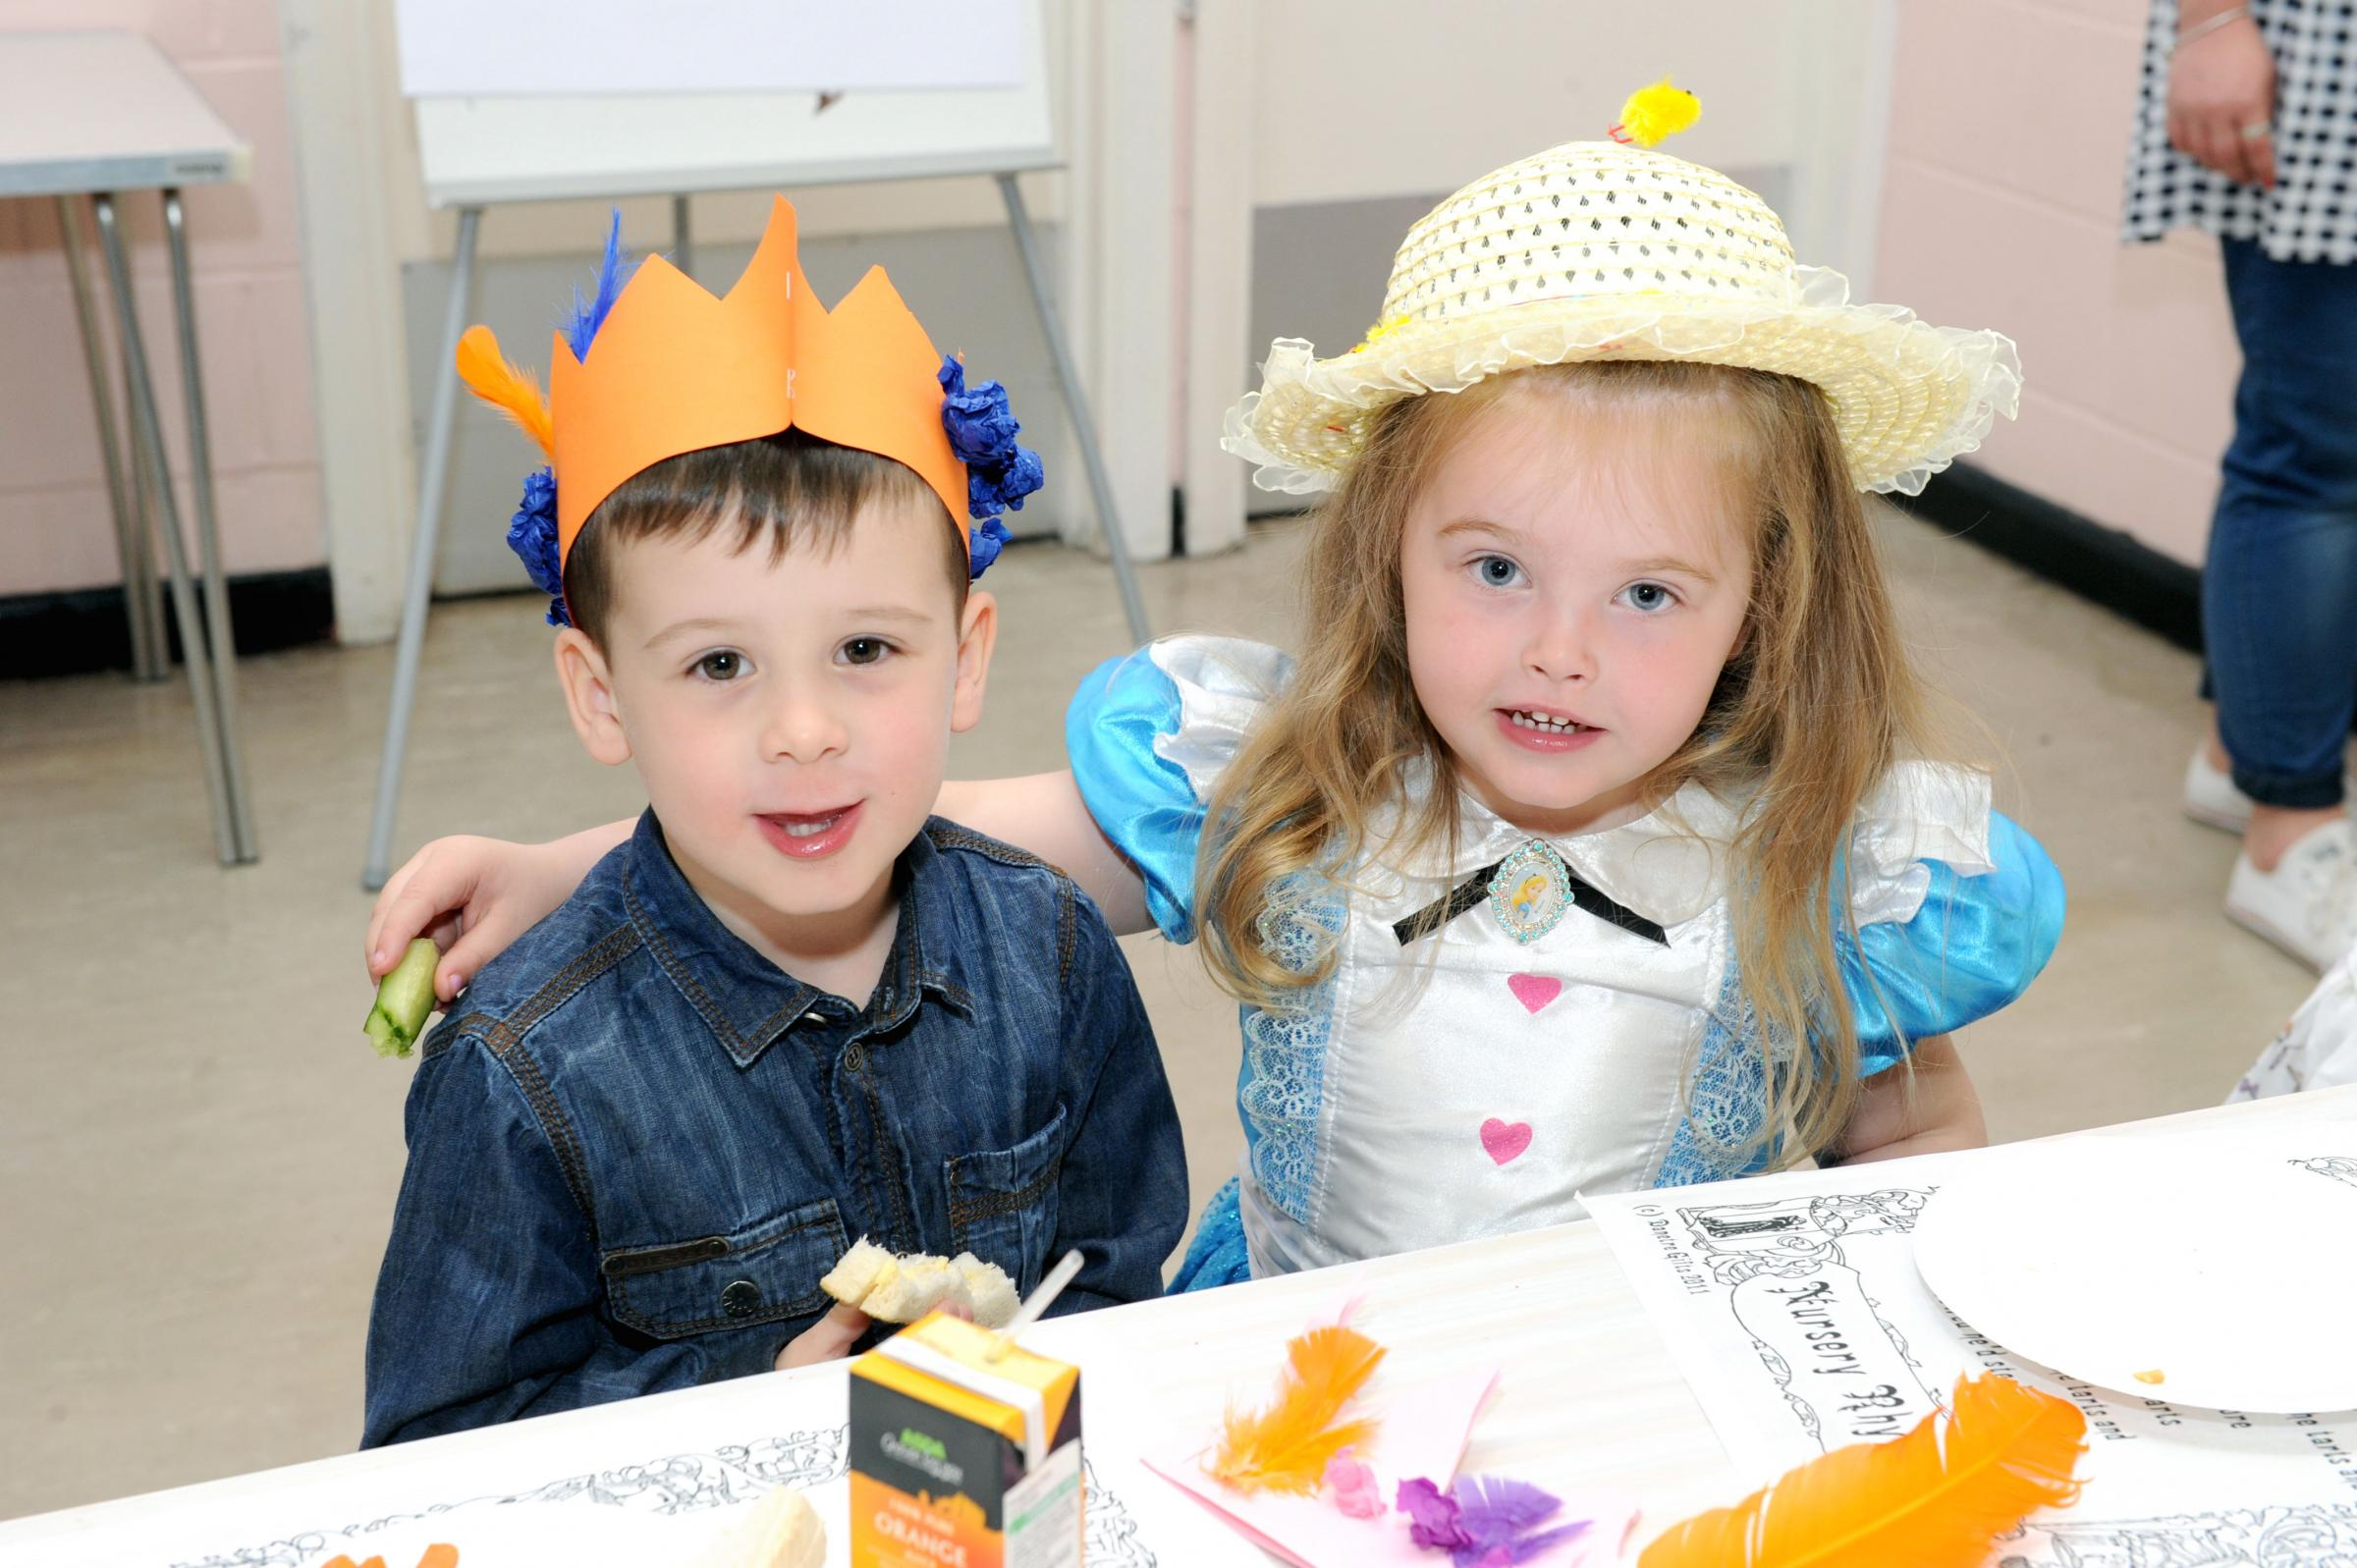 PICTURED: Mad hatter's tea party at Danson Centre in Bexleyheath